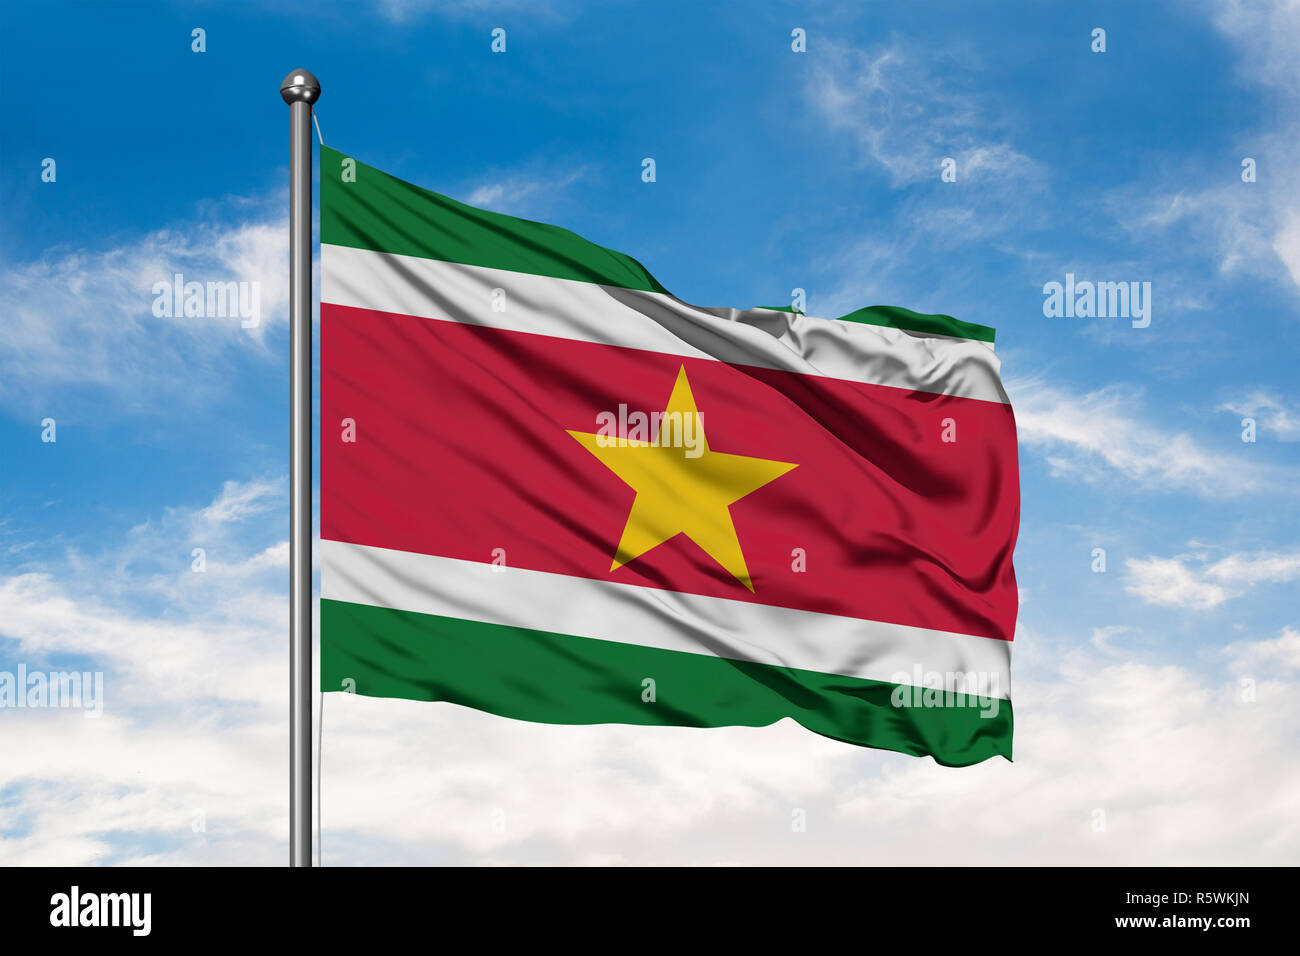 Flag of Suriname waving in the wind against white cloudy blue sky. Surinamese flag. - Stock Image